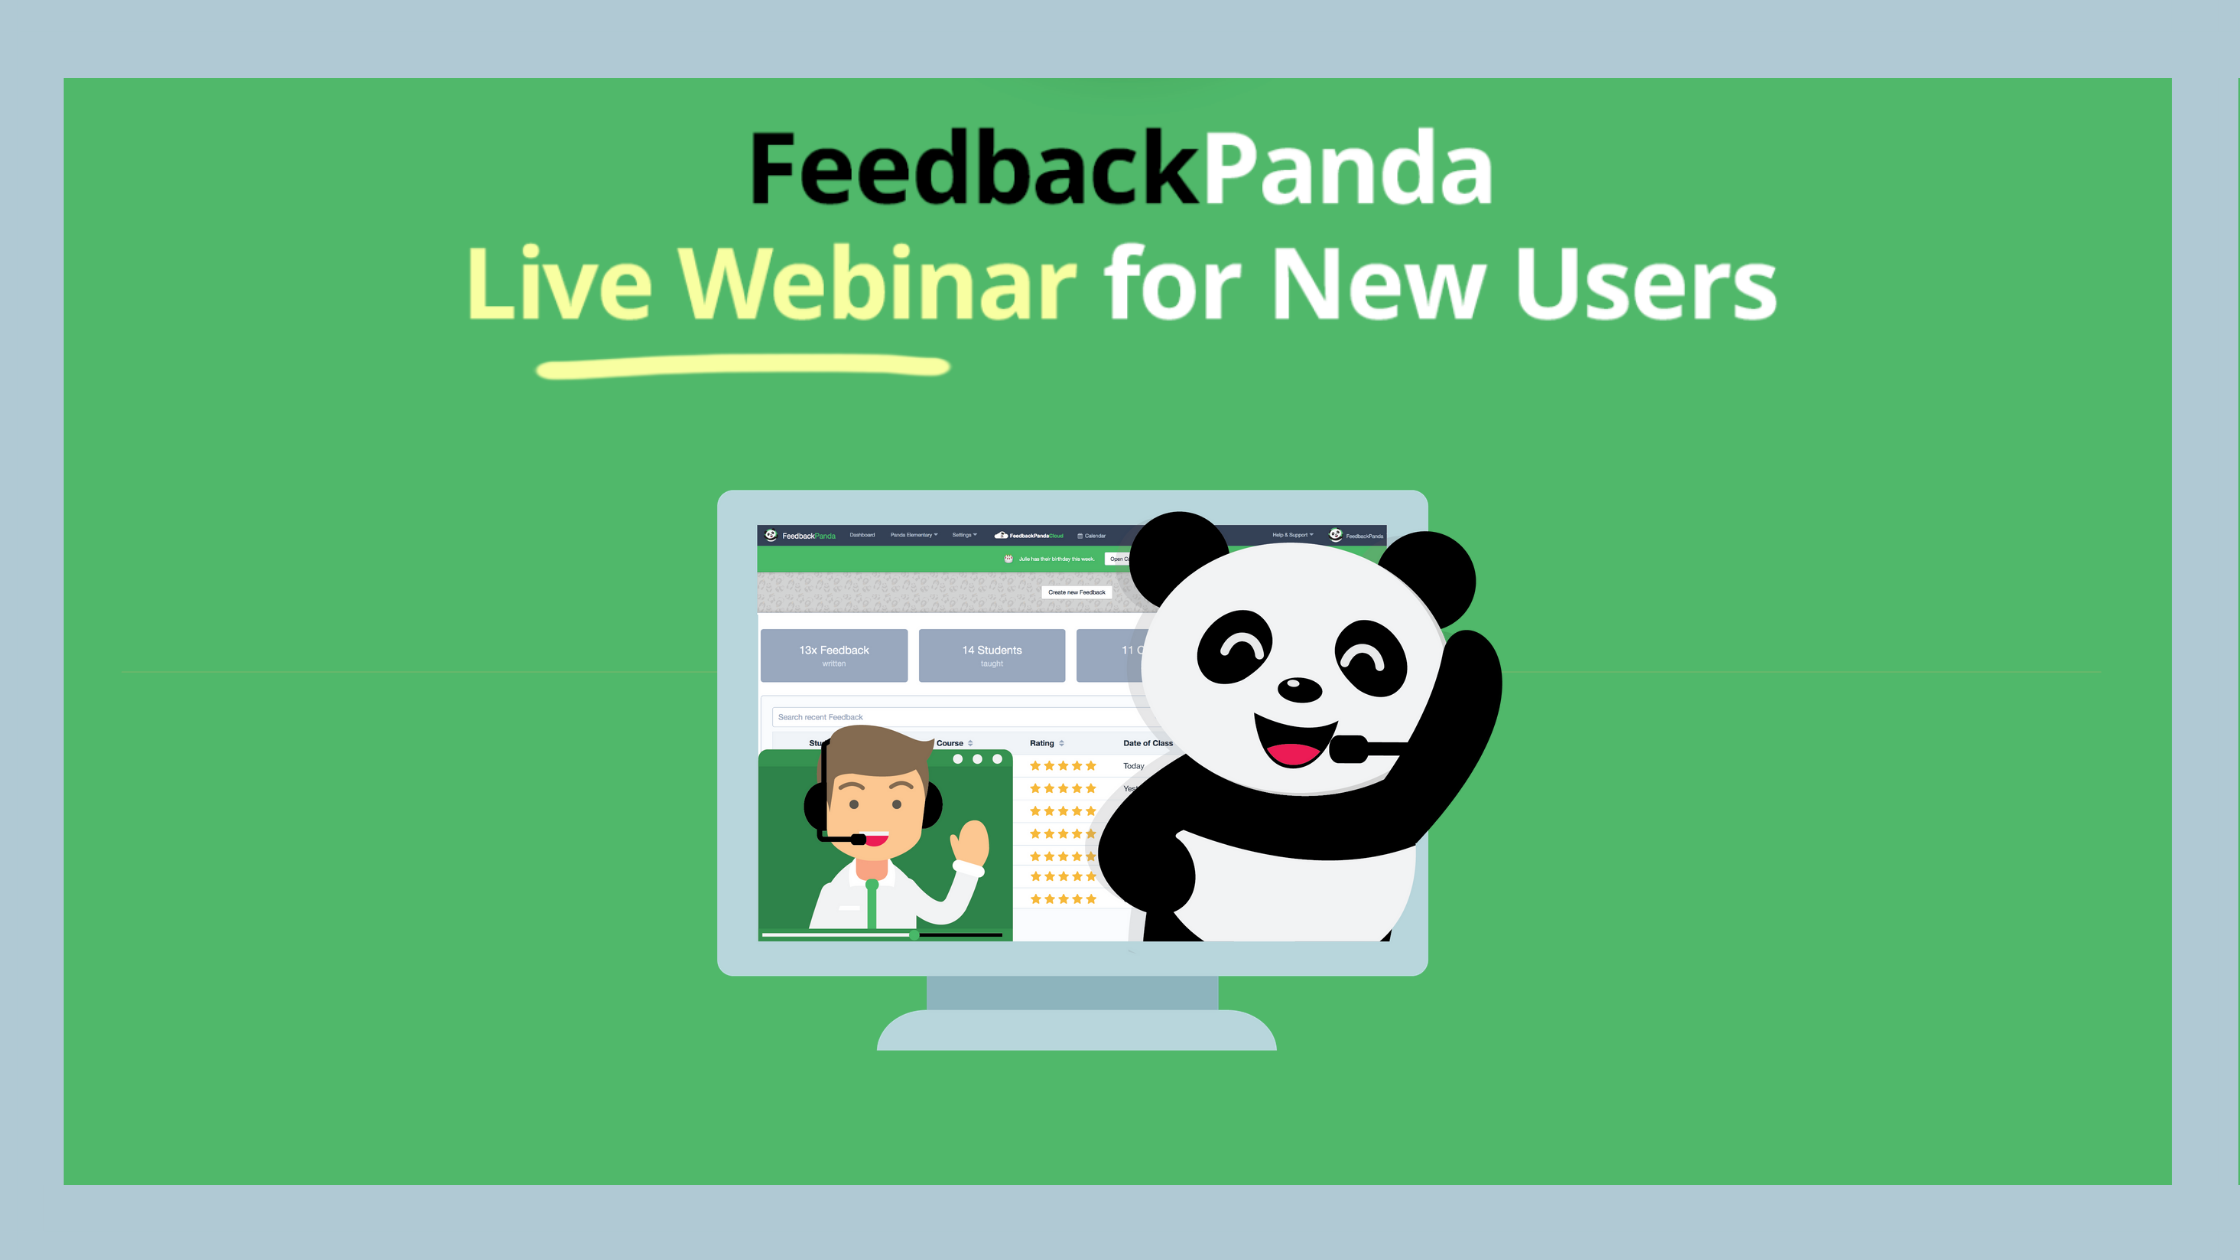 FeedbackPanda Live Webinar for New Users